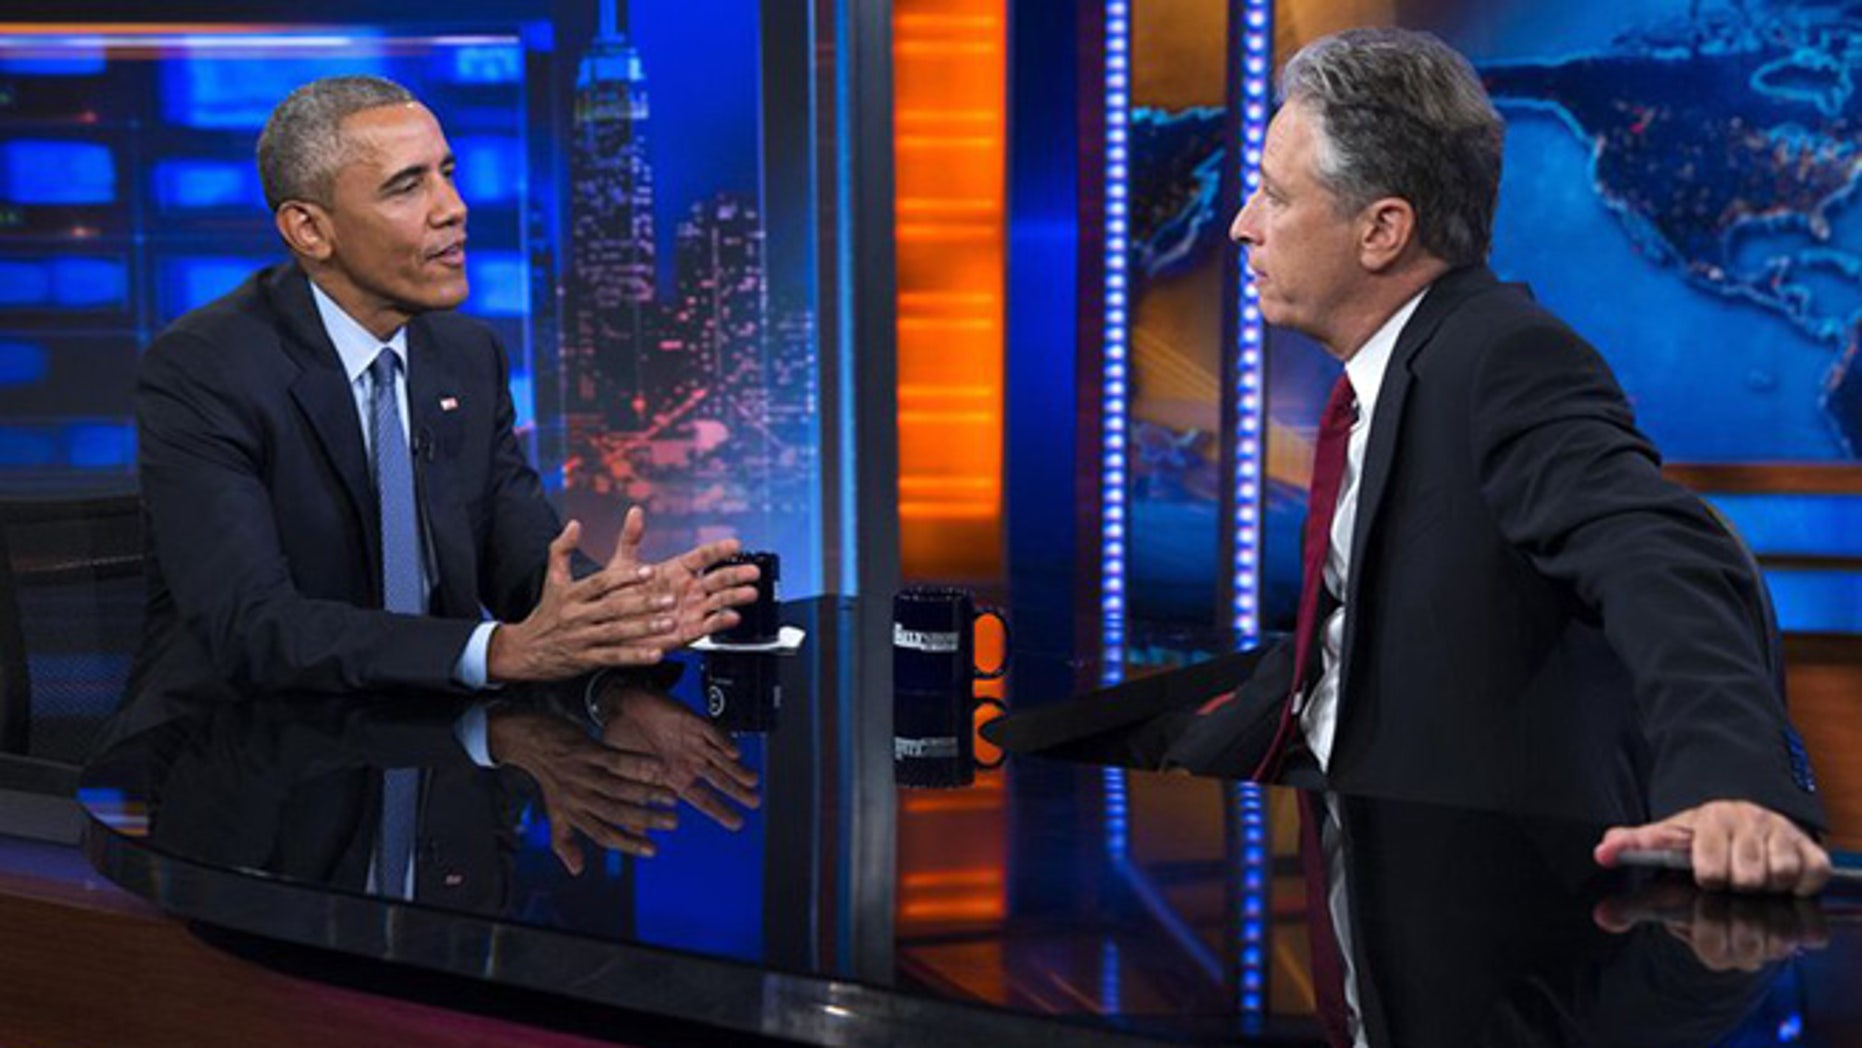 """President Barack Obama, left, talks with Jon Stewart, host of """"The Daily Show"""" during a taping, on Tuesday, July 21, 2015, in New York."""